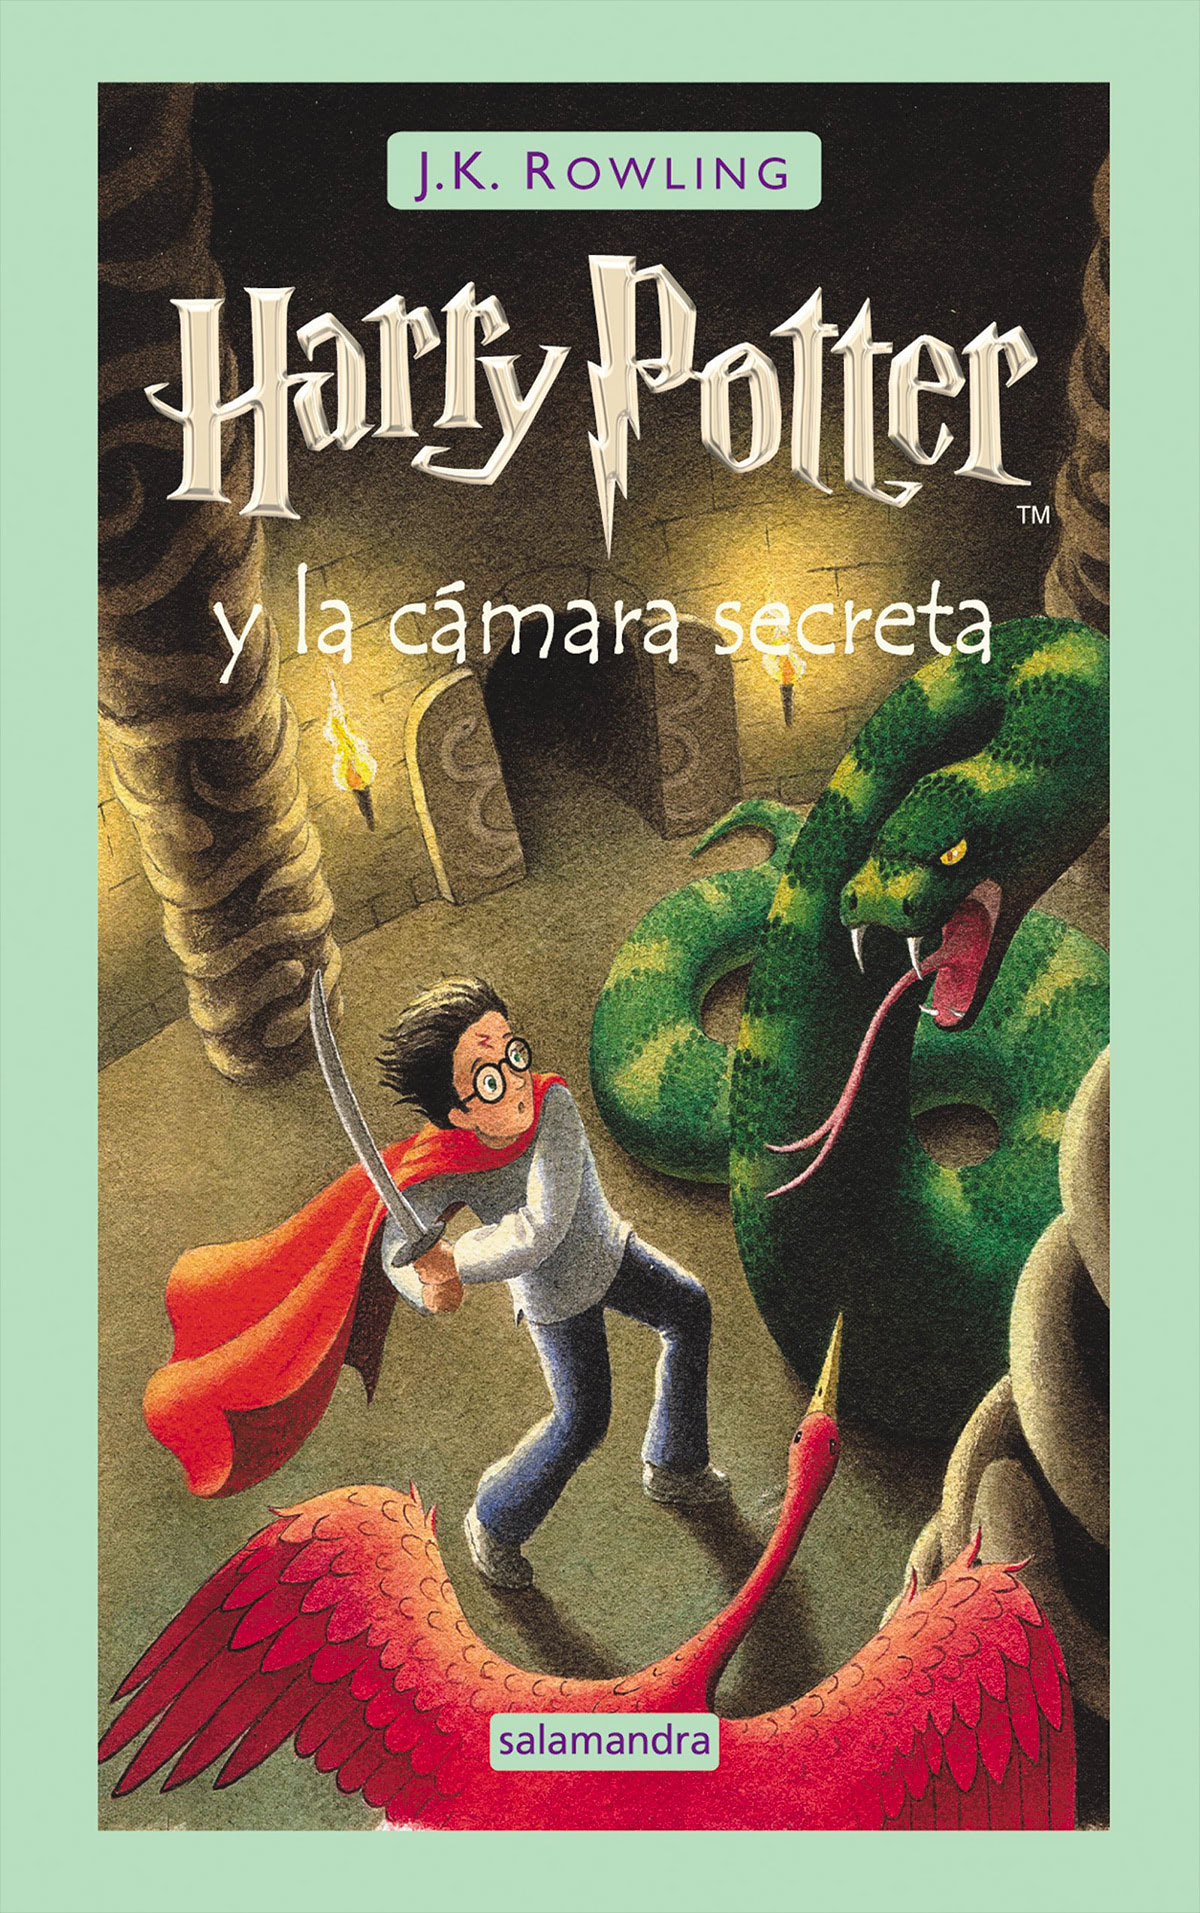 'Chamber of Secrets' Spanish edition